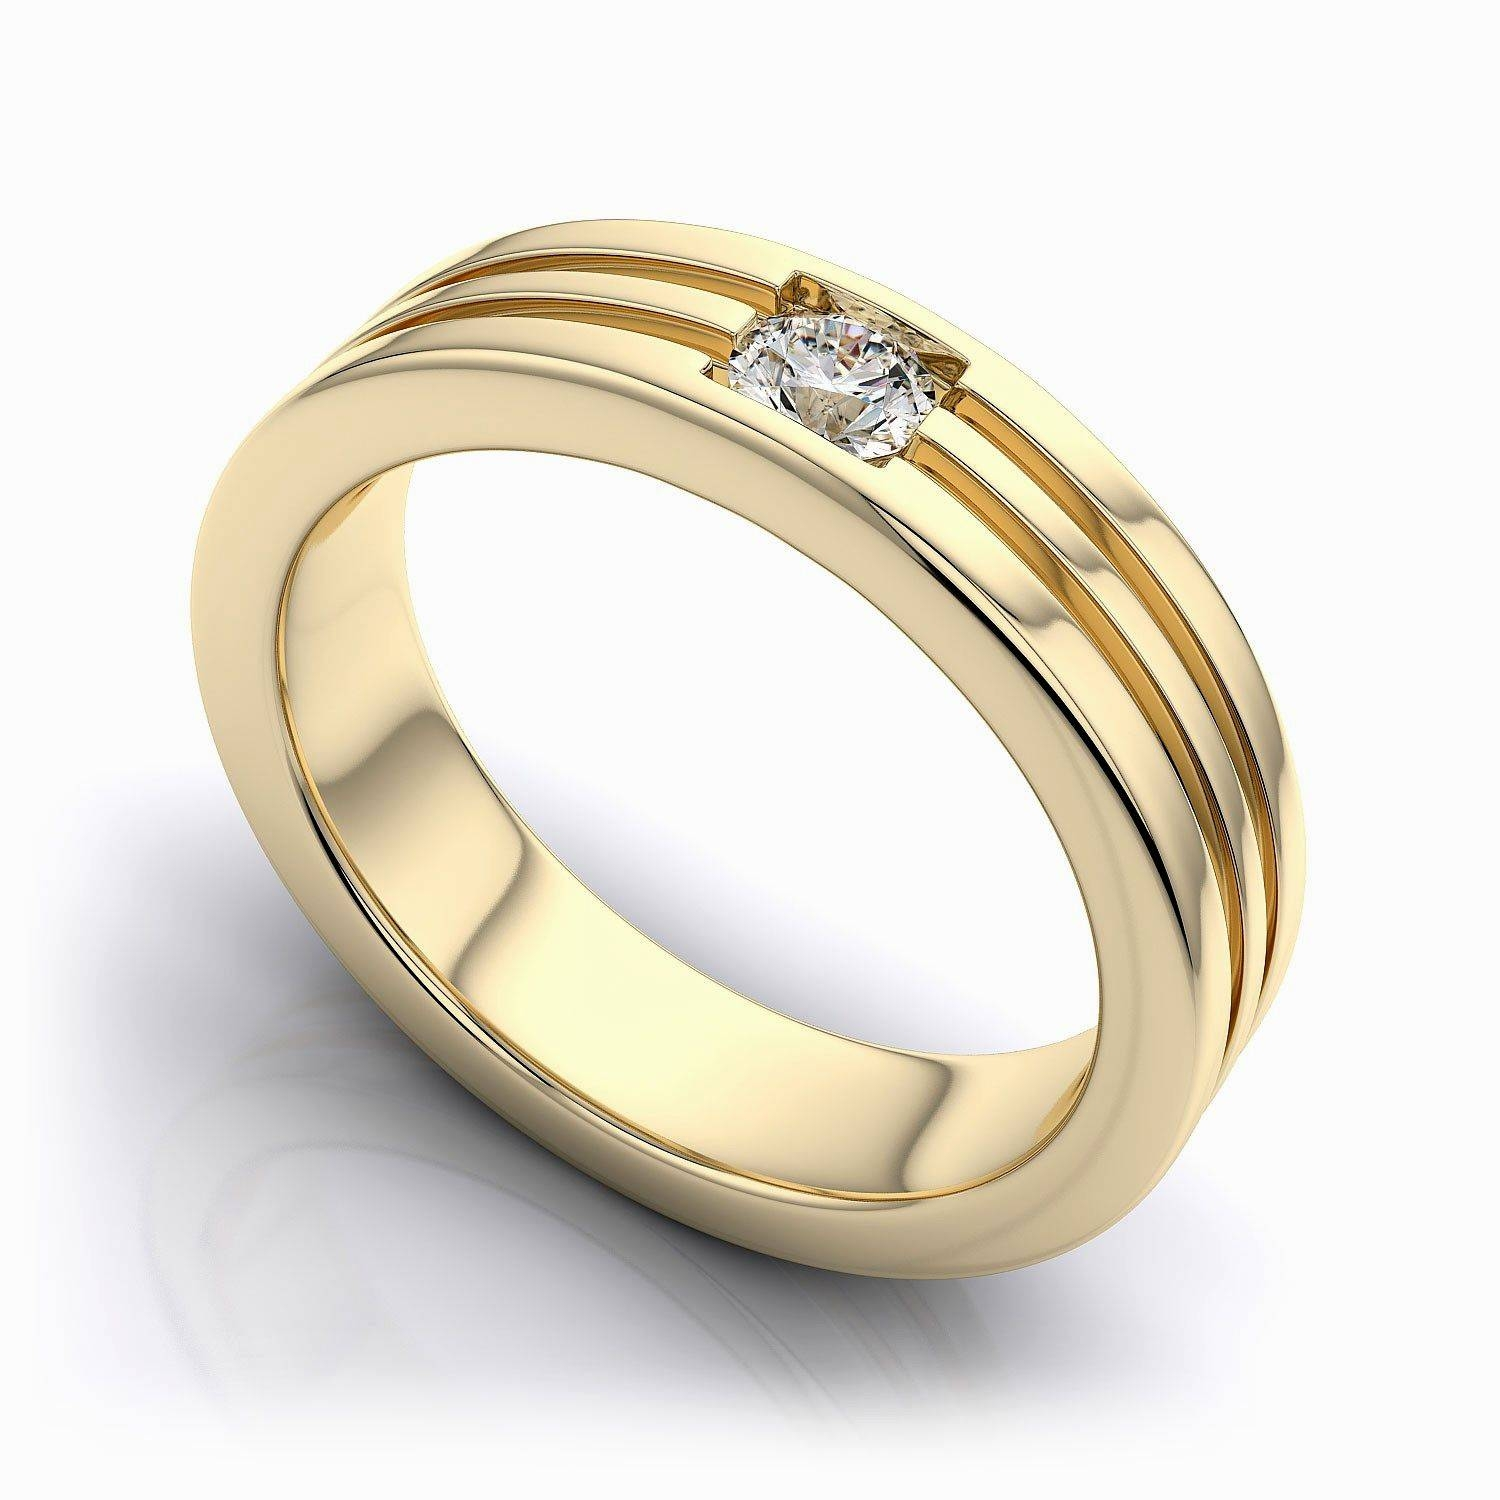 of silver design jewellery awesome gold with diamond big rings fresh unique ring men for male stone jewelry